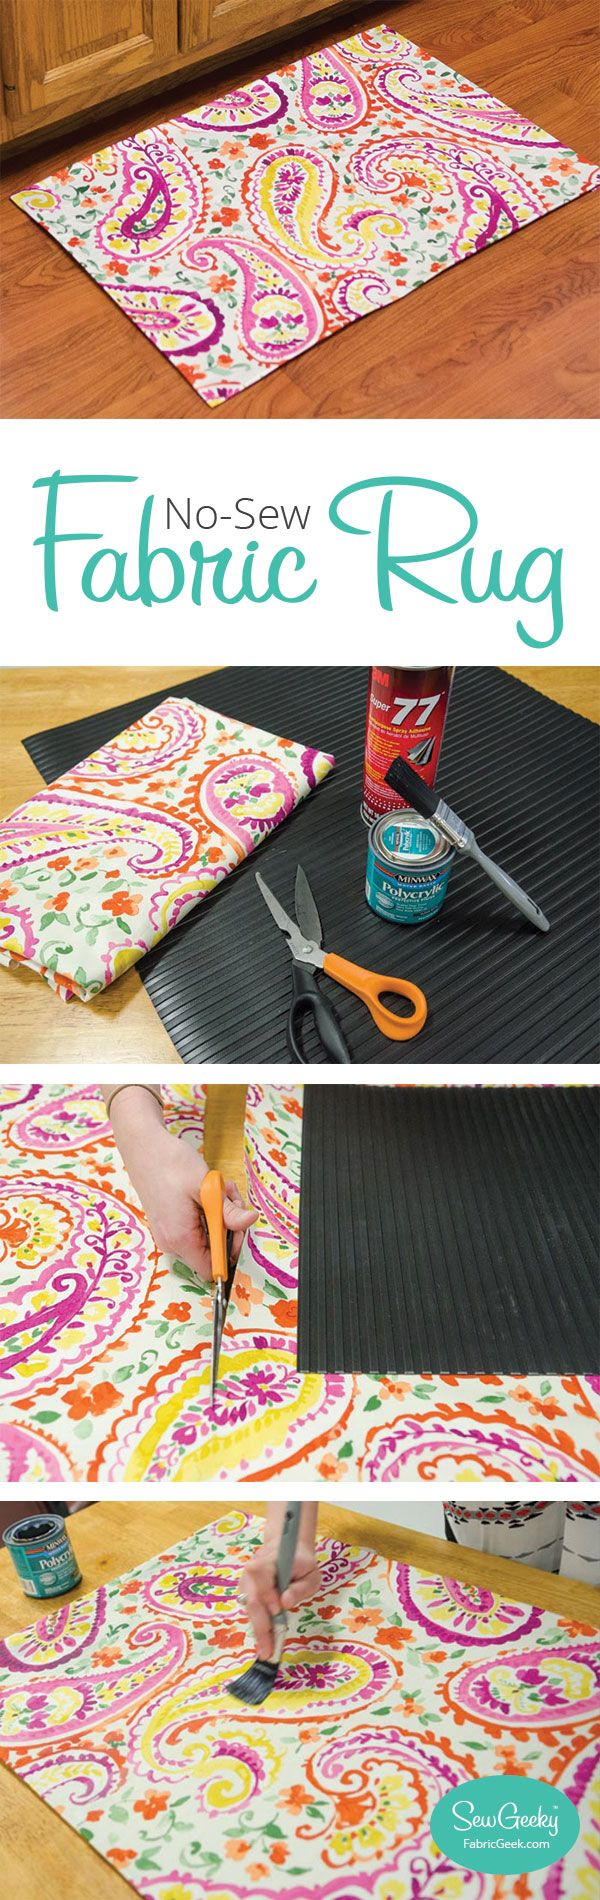 Make A No Sew Fabric Rug In Seconds It S So Easy Give